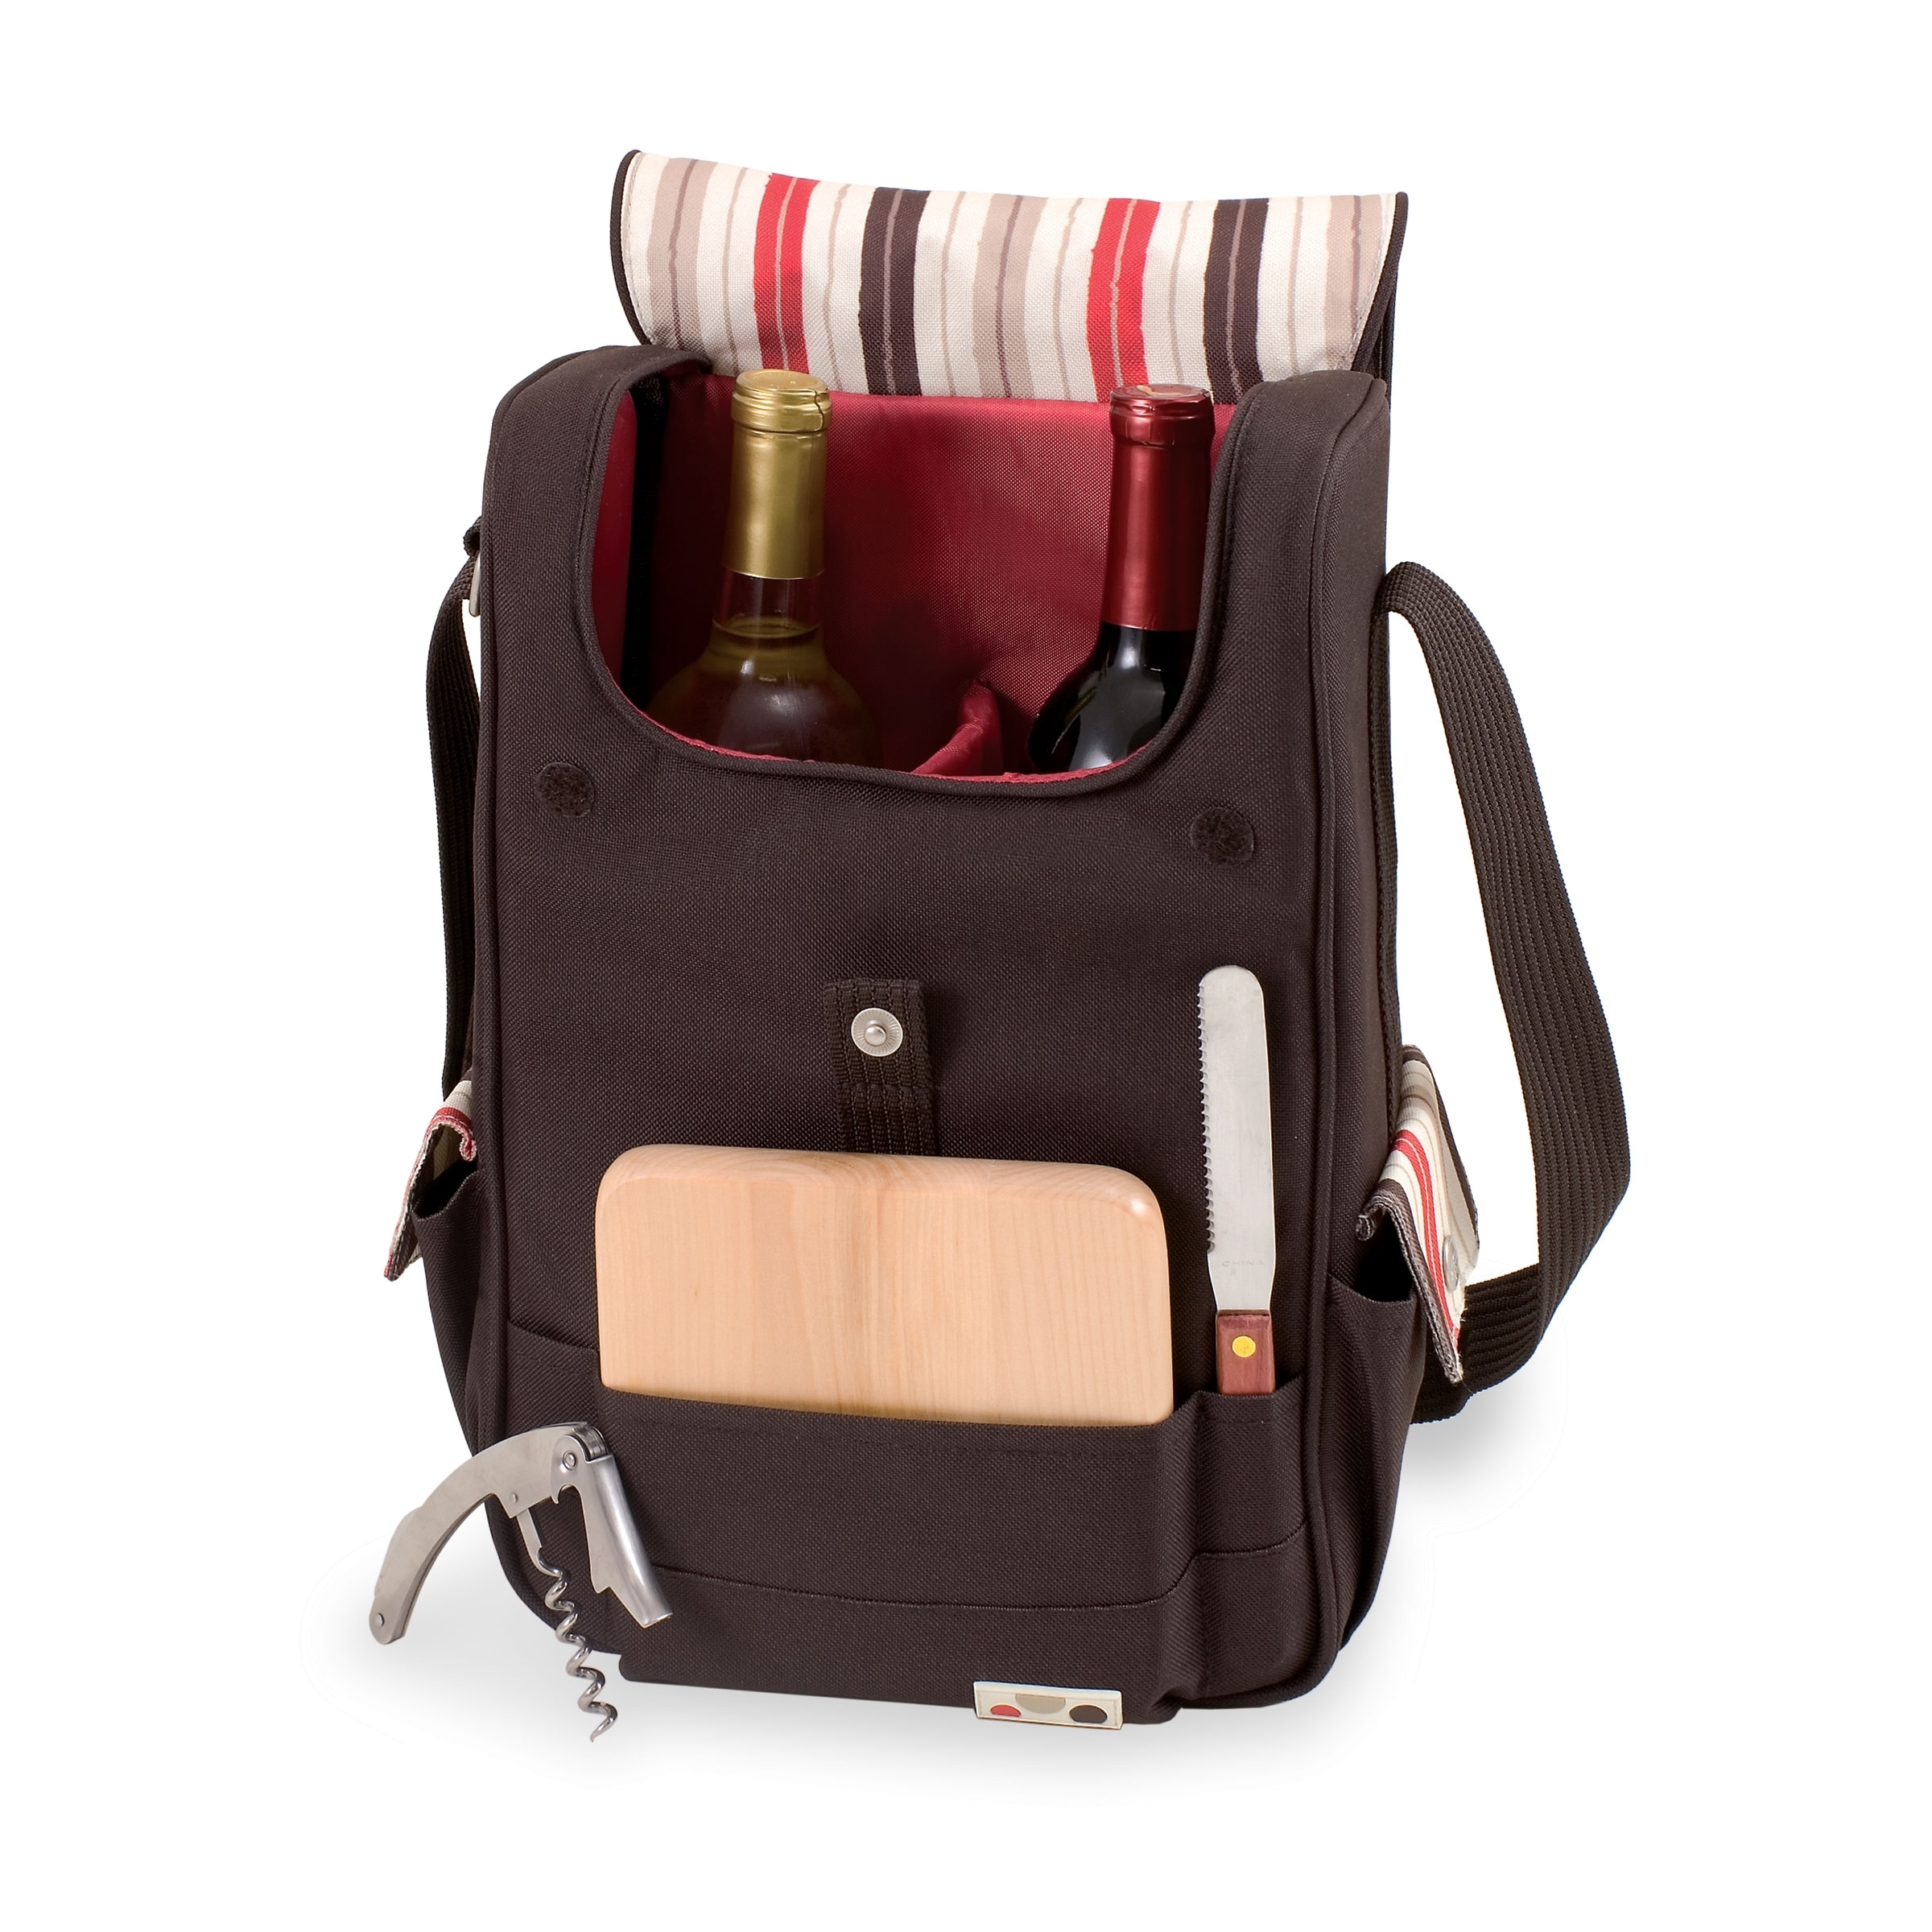 Volare Wine & Cheese Insulated Tote Set - Moka Collection